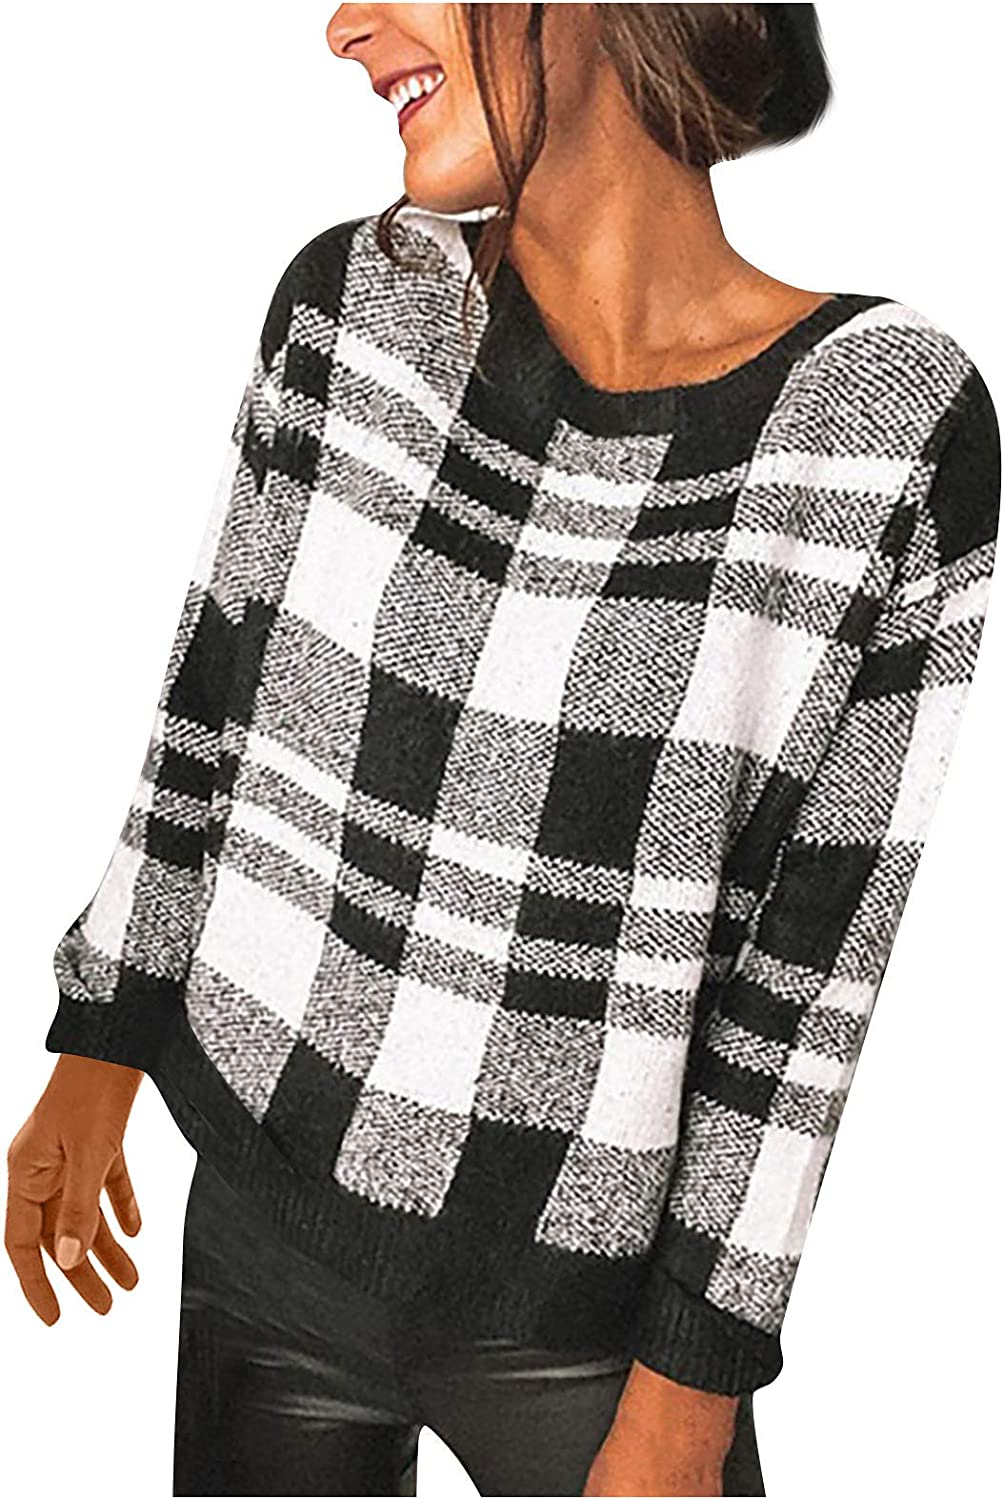 Women Classic Plaid Pullovers Autumn Warm Long Sleeve T-Shirts Casual Daily Crewneck Fitted Tee Blouse